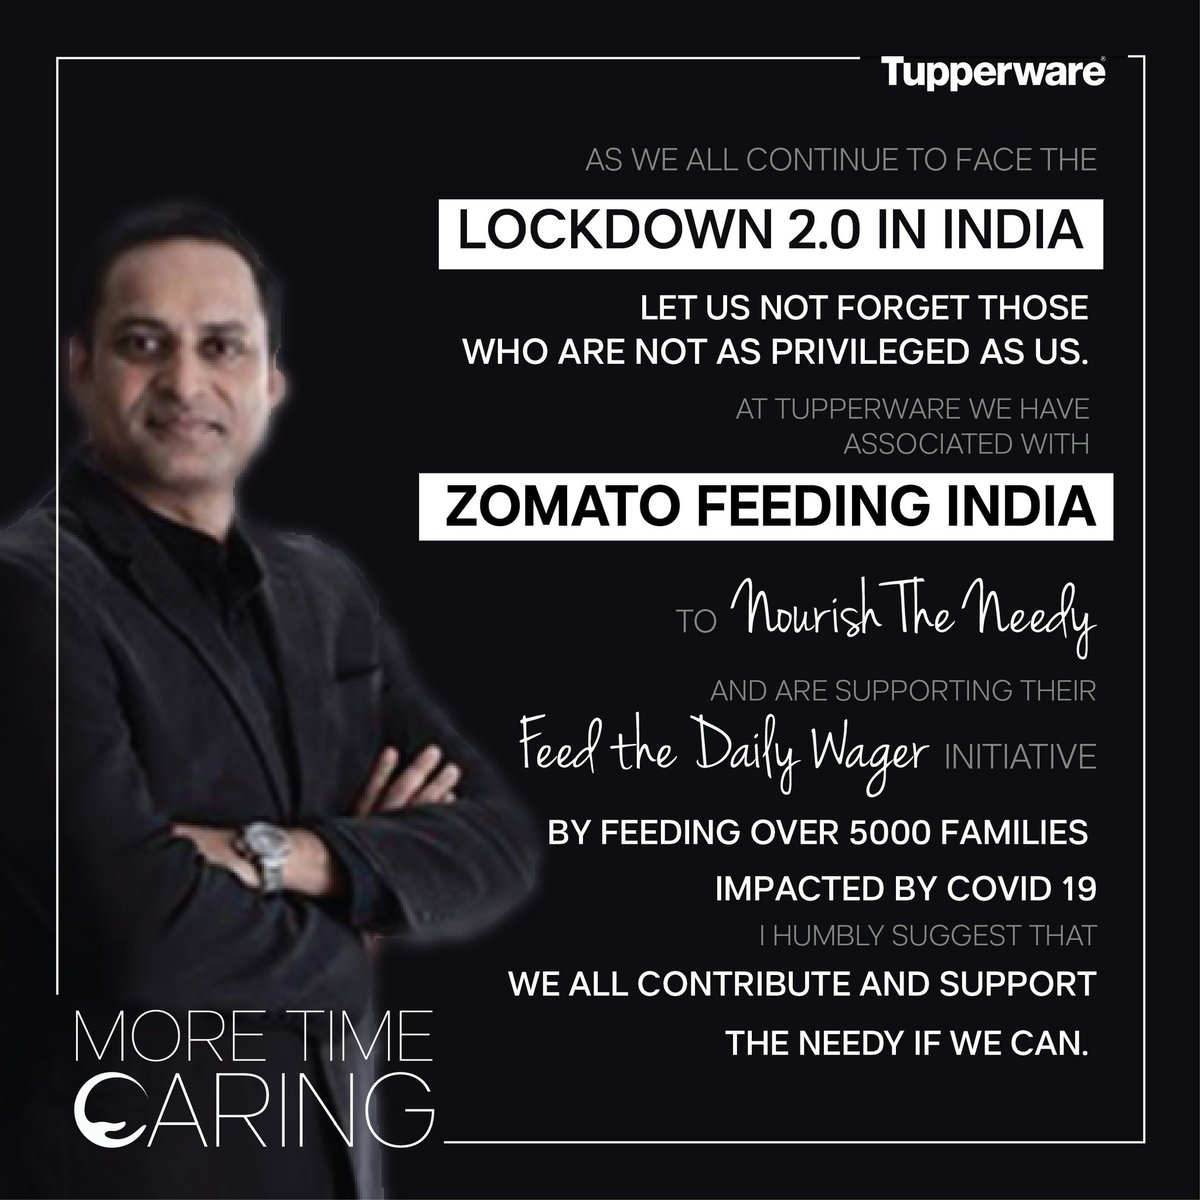 As the #lockdown continues, a message from our Managing Director, letting you know that Tupperware is with you and together we shall conquer this. #StayHome #StaySafe #MoreTimeCaring (2/2) https://t.co/8qw6N1abug